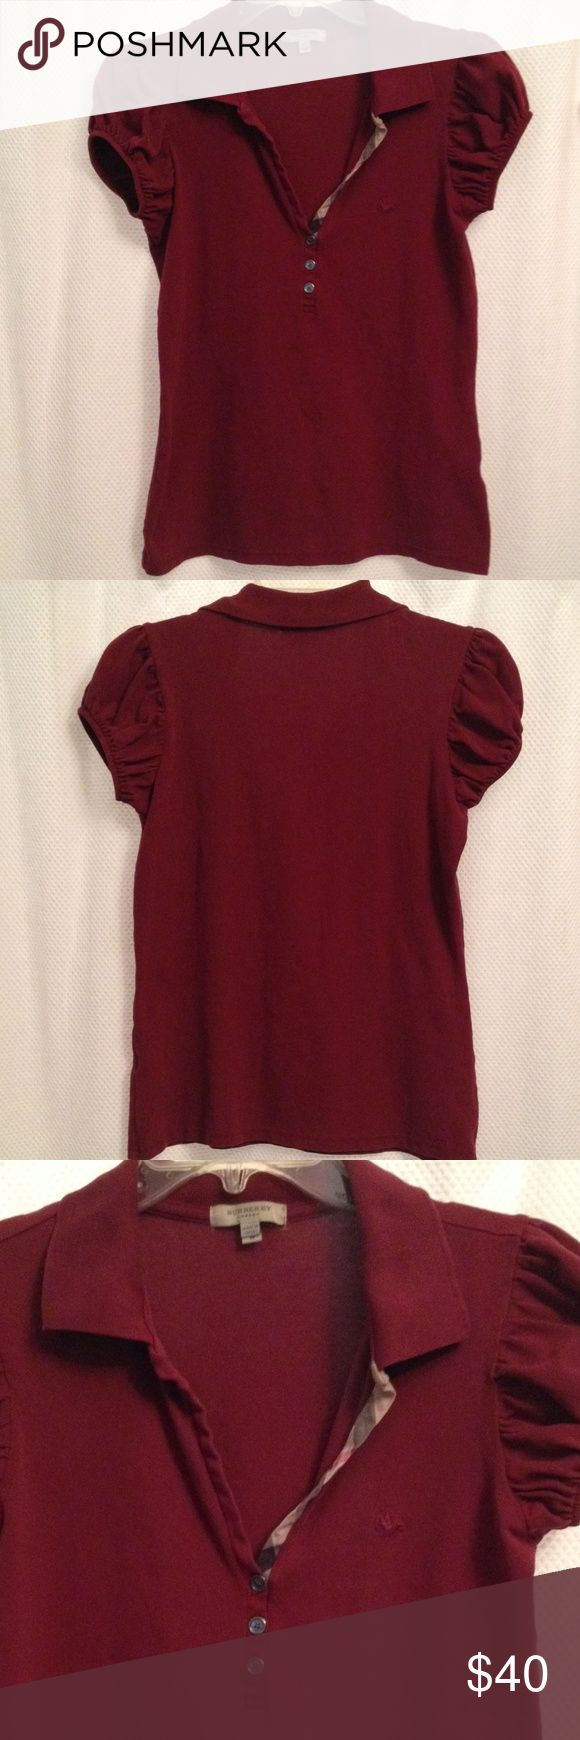 Cranberry Burberry polo shirt with puff sleeves Cranberry polo shirt by Burberry with puff sleeves.  Signature Burberry print detail is featured on the neckline.  This shirt does not button, so it has a V neckline. Size M Burberry Tops